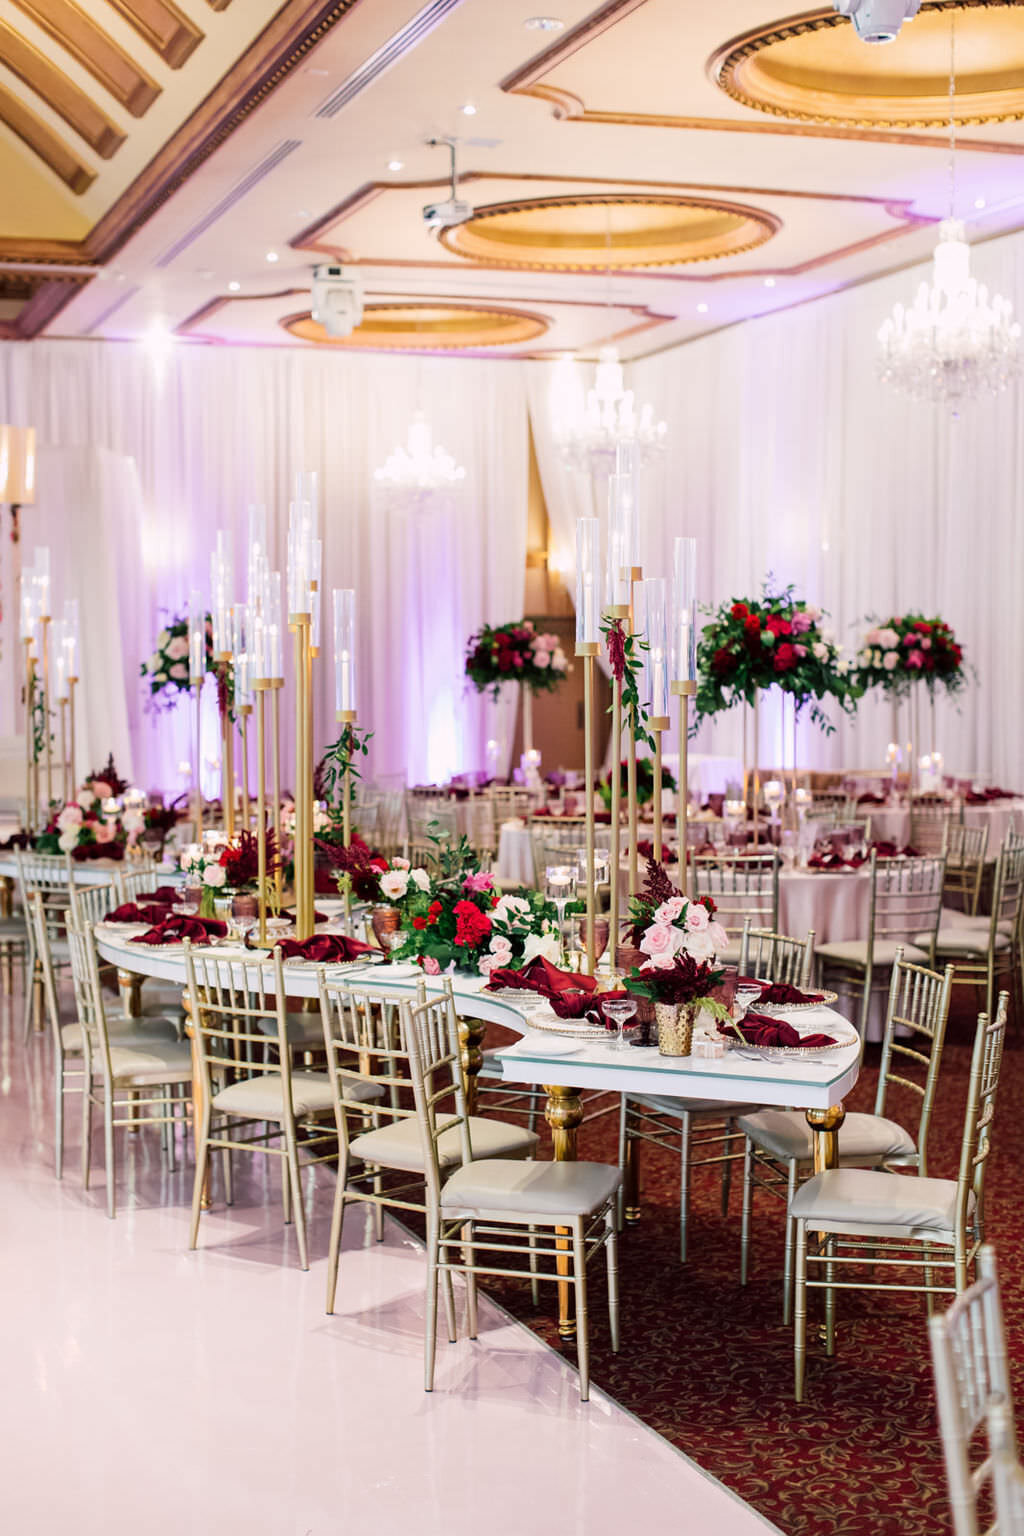 Diana-Pires-Events-RoyalAmbassador-Toronto-Wedding-0001-149